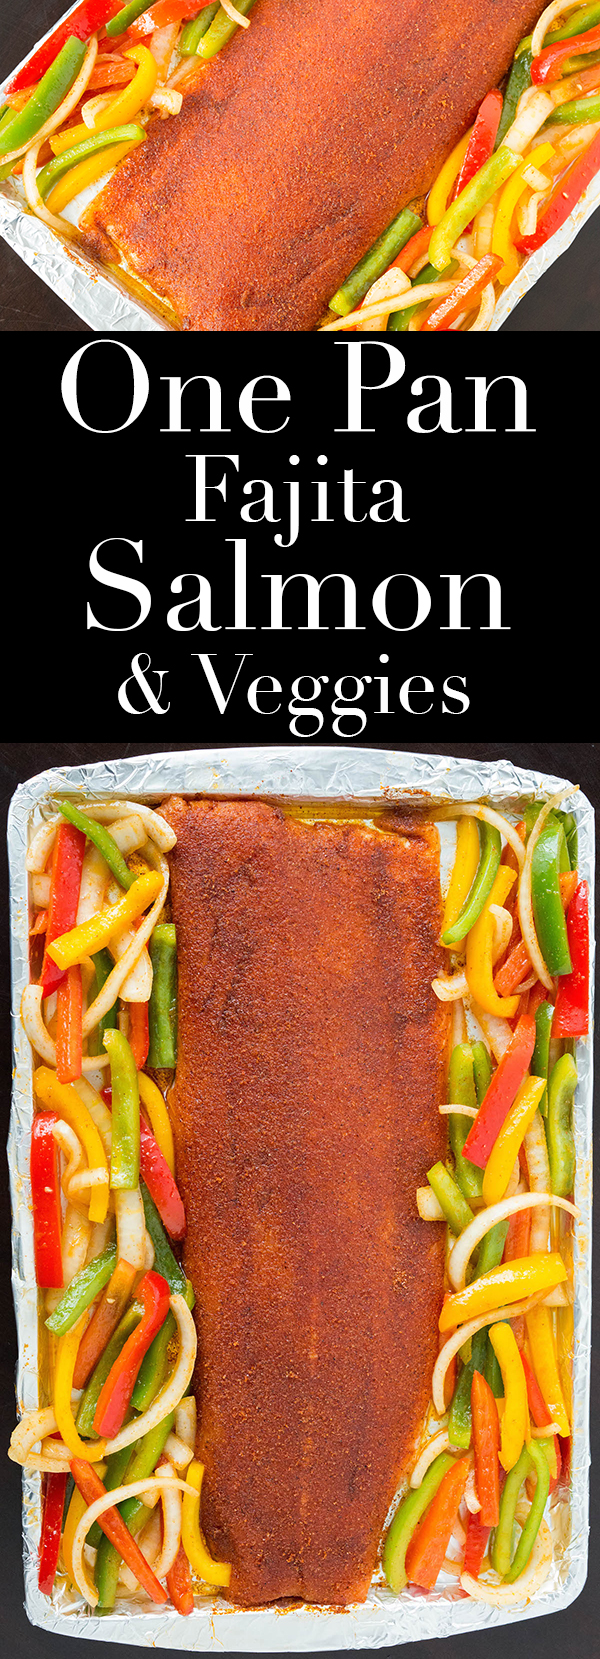 An easy, healthy weeknight dinner: one pan fajita salmon and veggies.